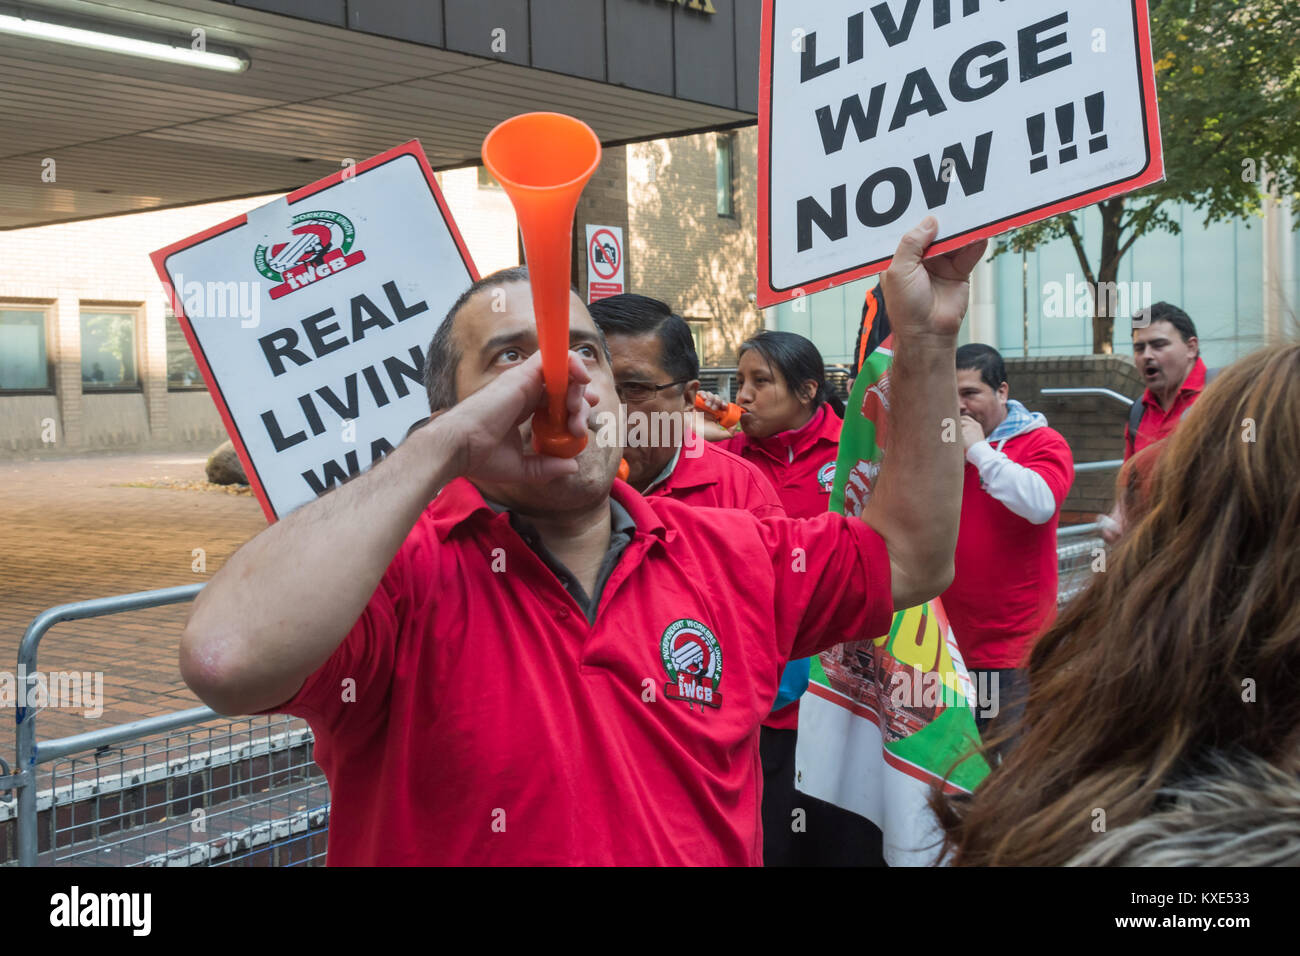 IWGB cleaners hold up placards 'Real Livng Wage Now!!' and blow horns as the walk around in front of Southwark - Stock Image